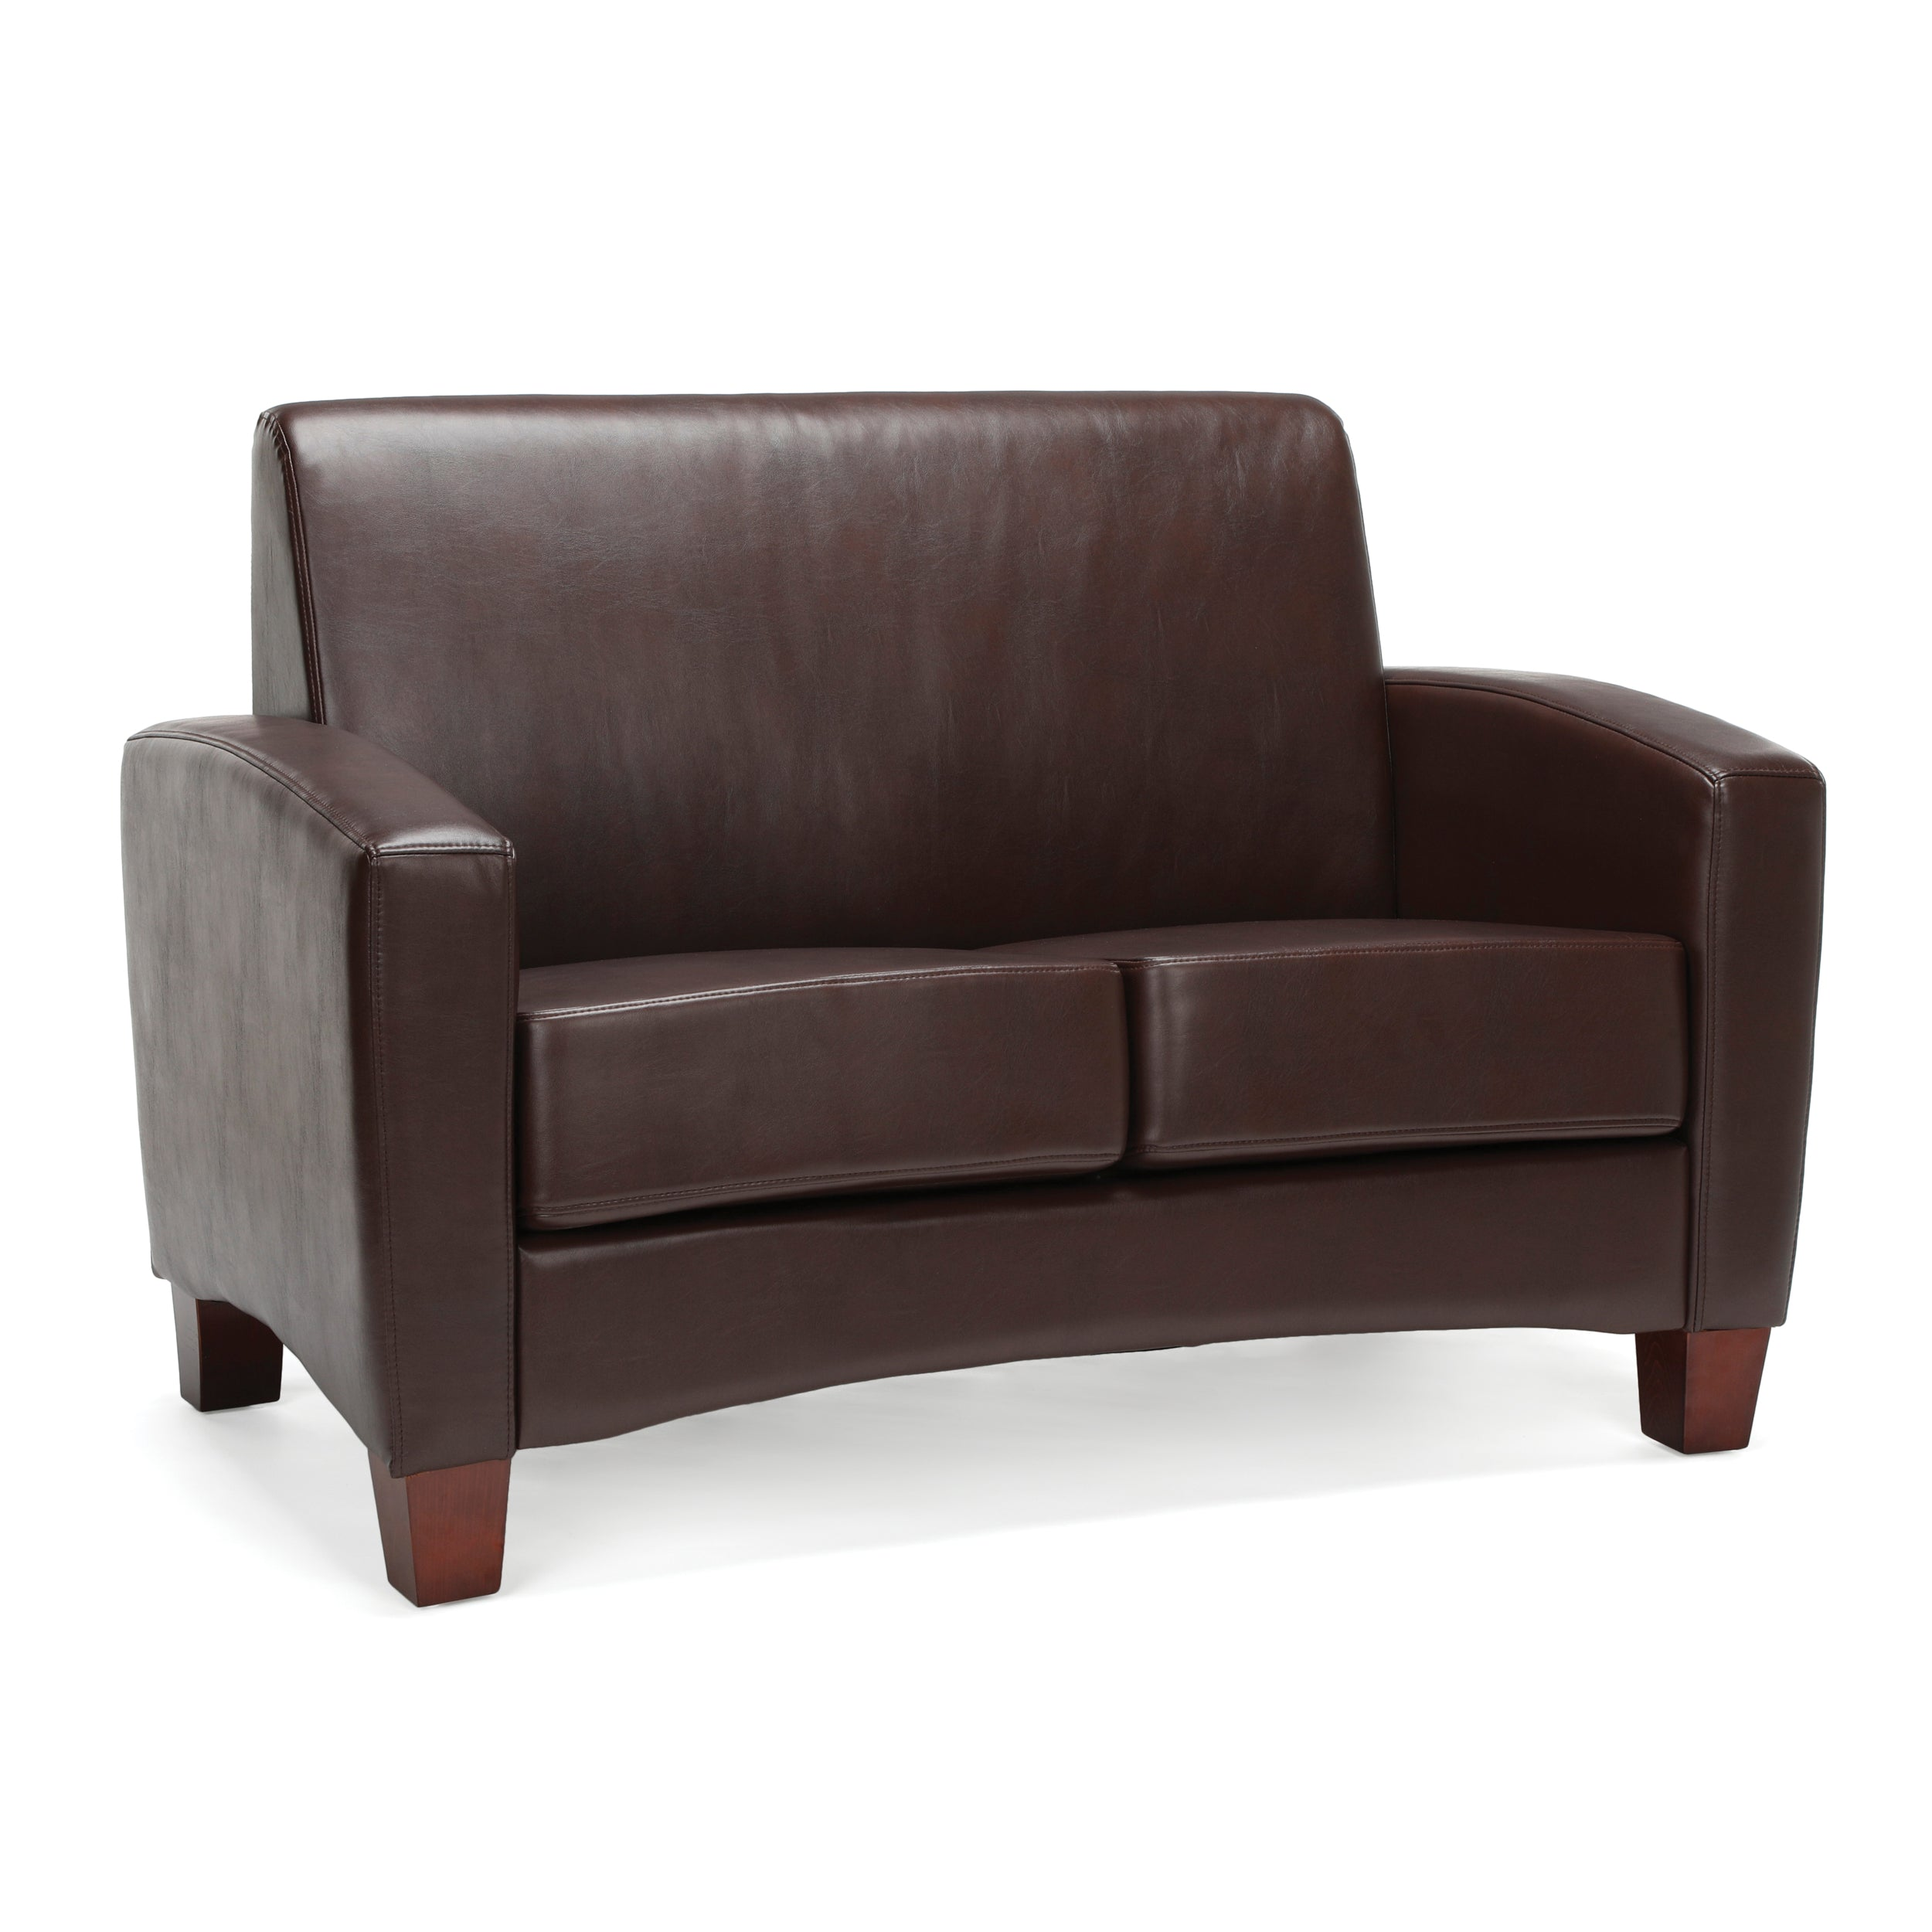 Ofminc Model ESS-9051 Essentials Traditional Armed Loveseat